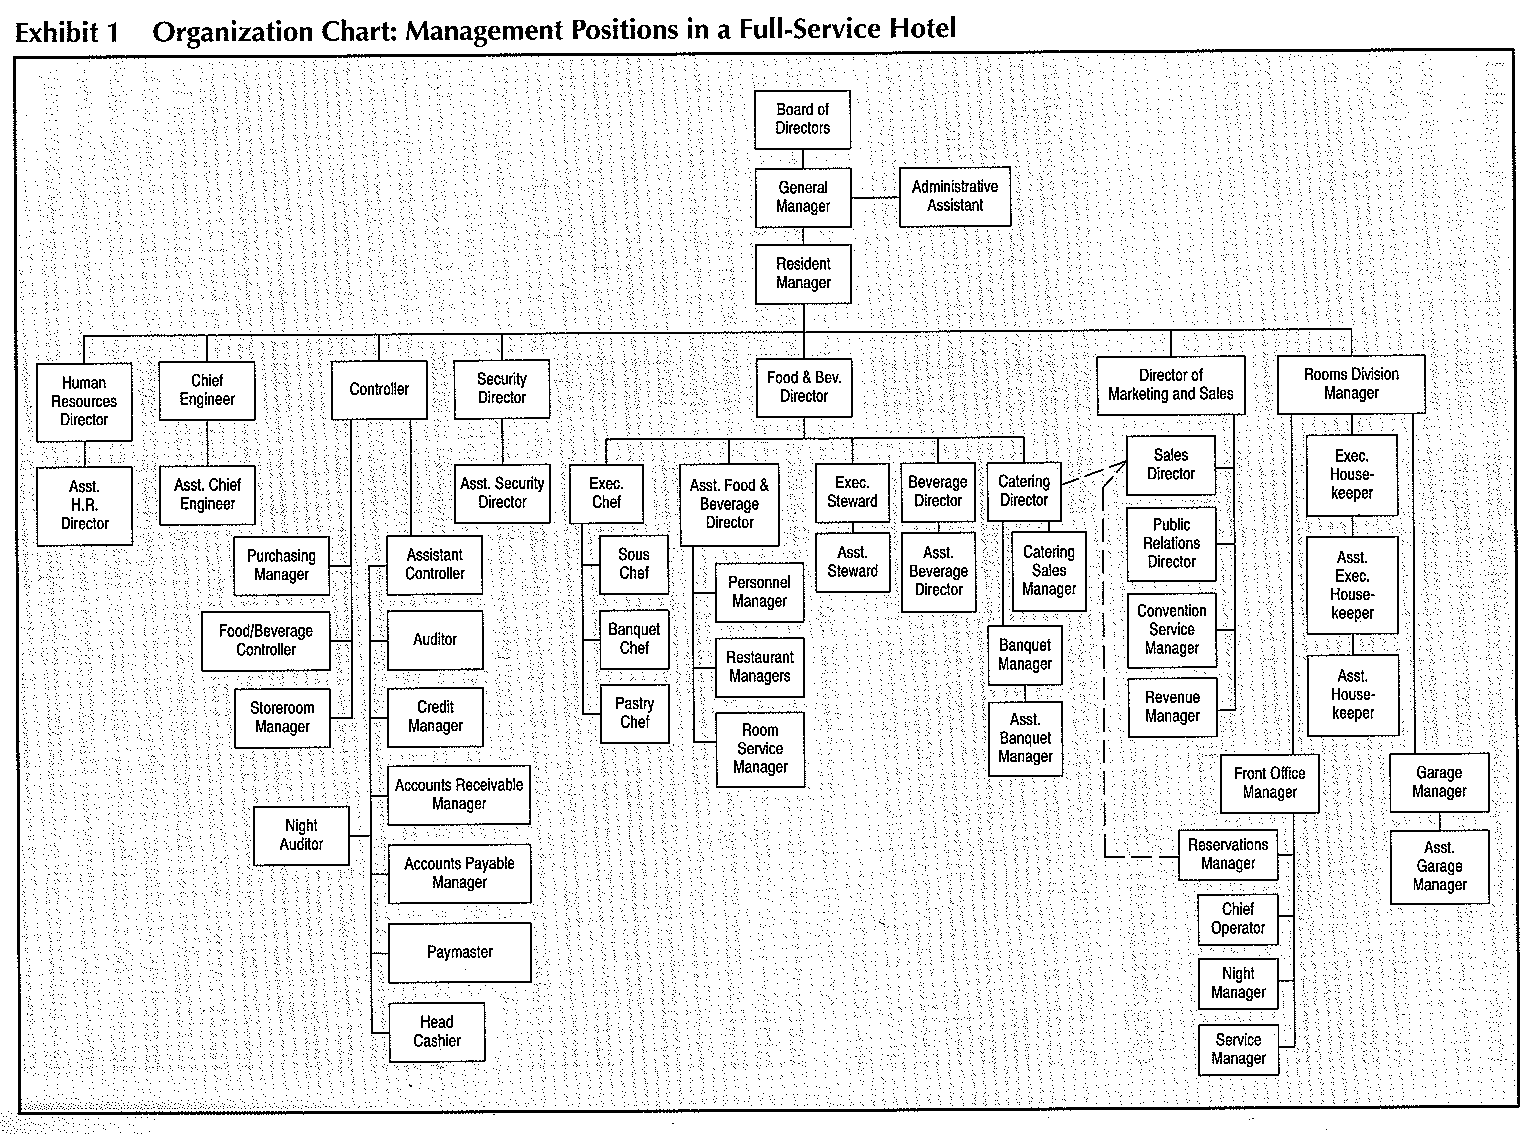 how to add level organisational chart 2013